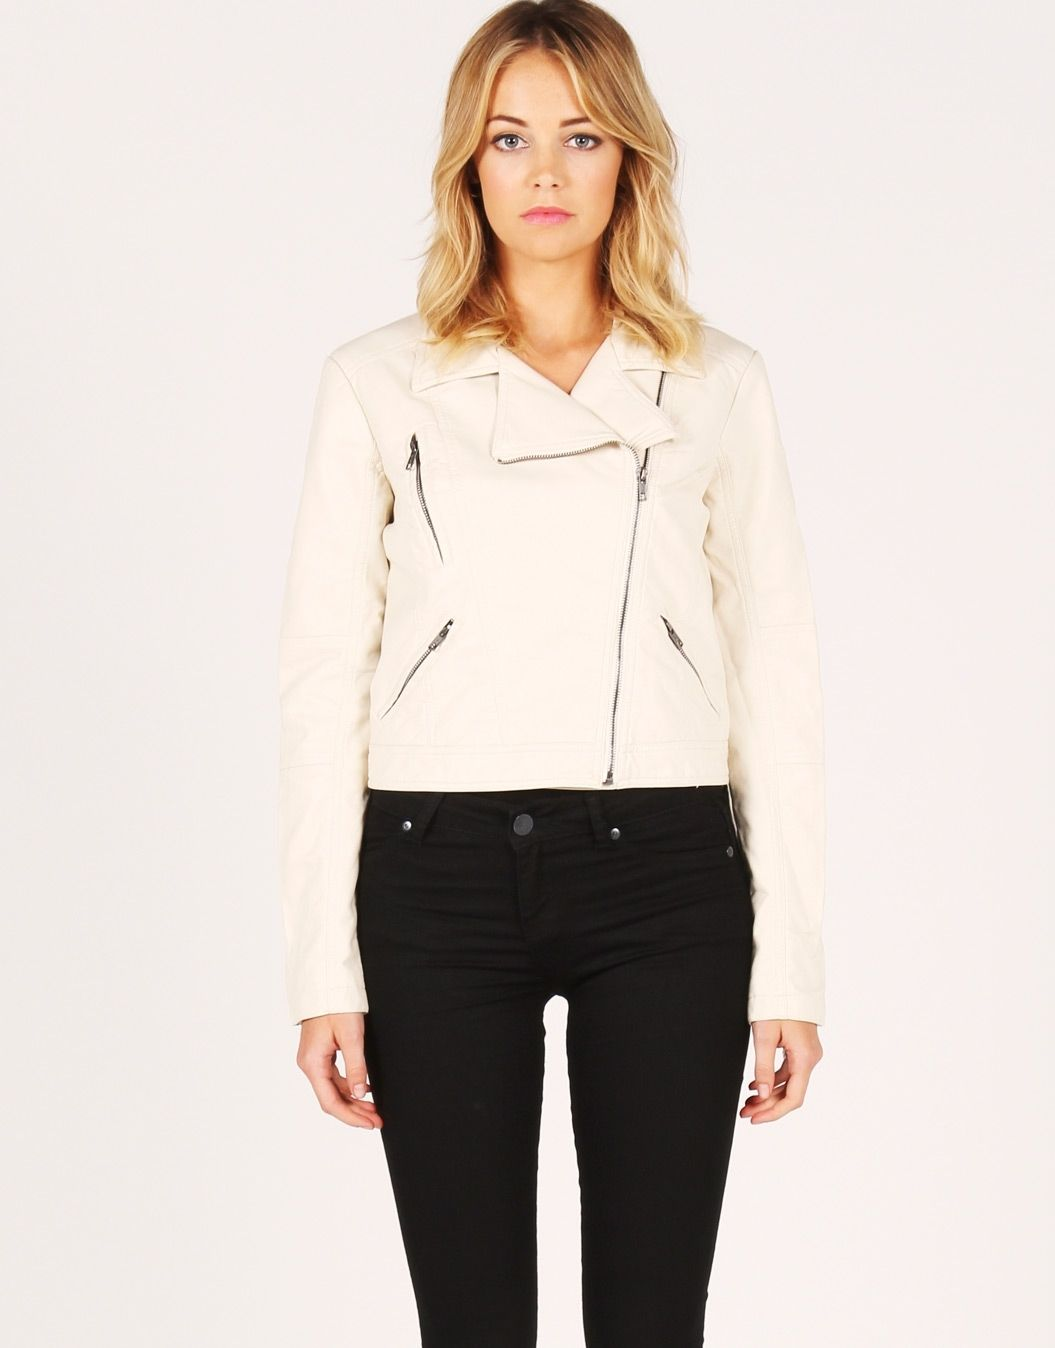 Glassons - Multi Zip Leather Look Jacket ... For ...